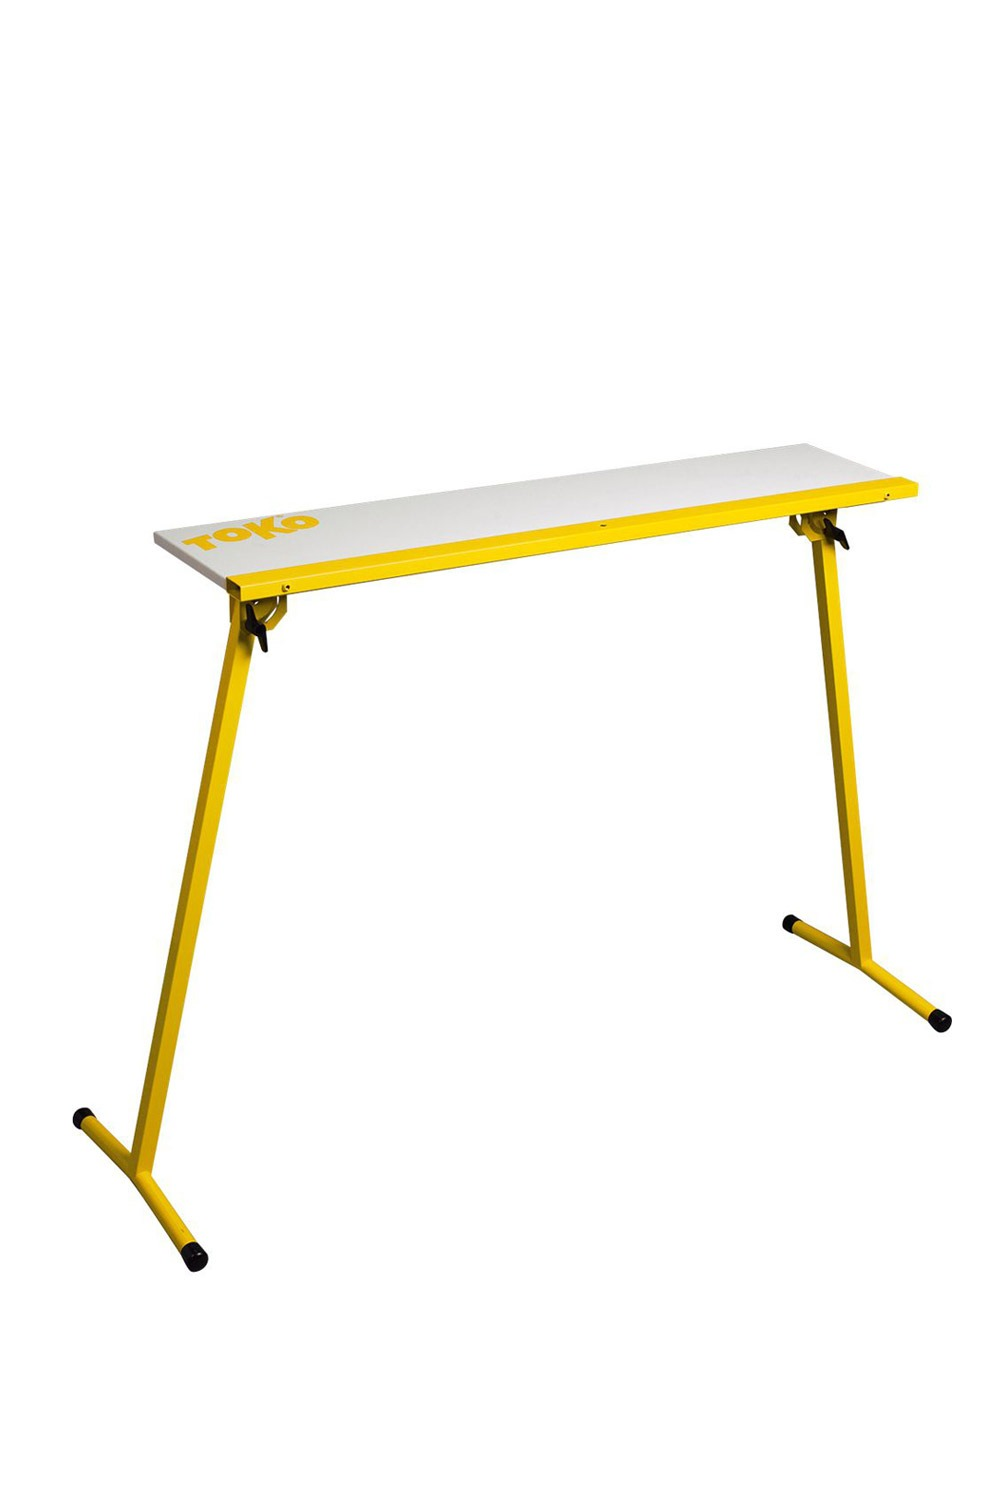 토코 데크 관리/TOKO EXPRESS WORKBENCH/TOKO EXPRESS WORKBENCH/간이용 작업대-5560029 / 105x25cm_